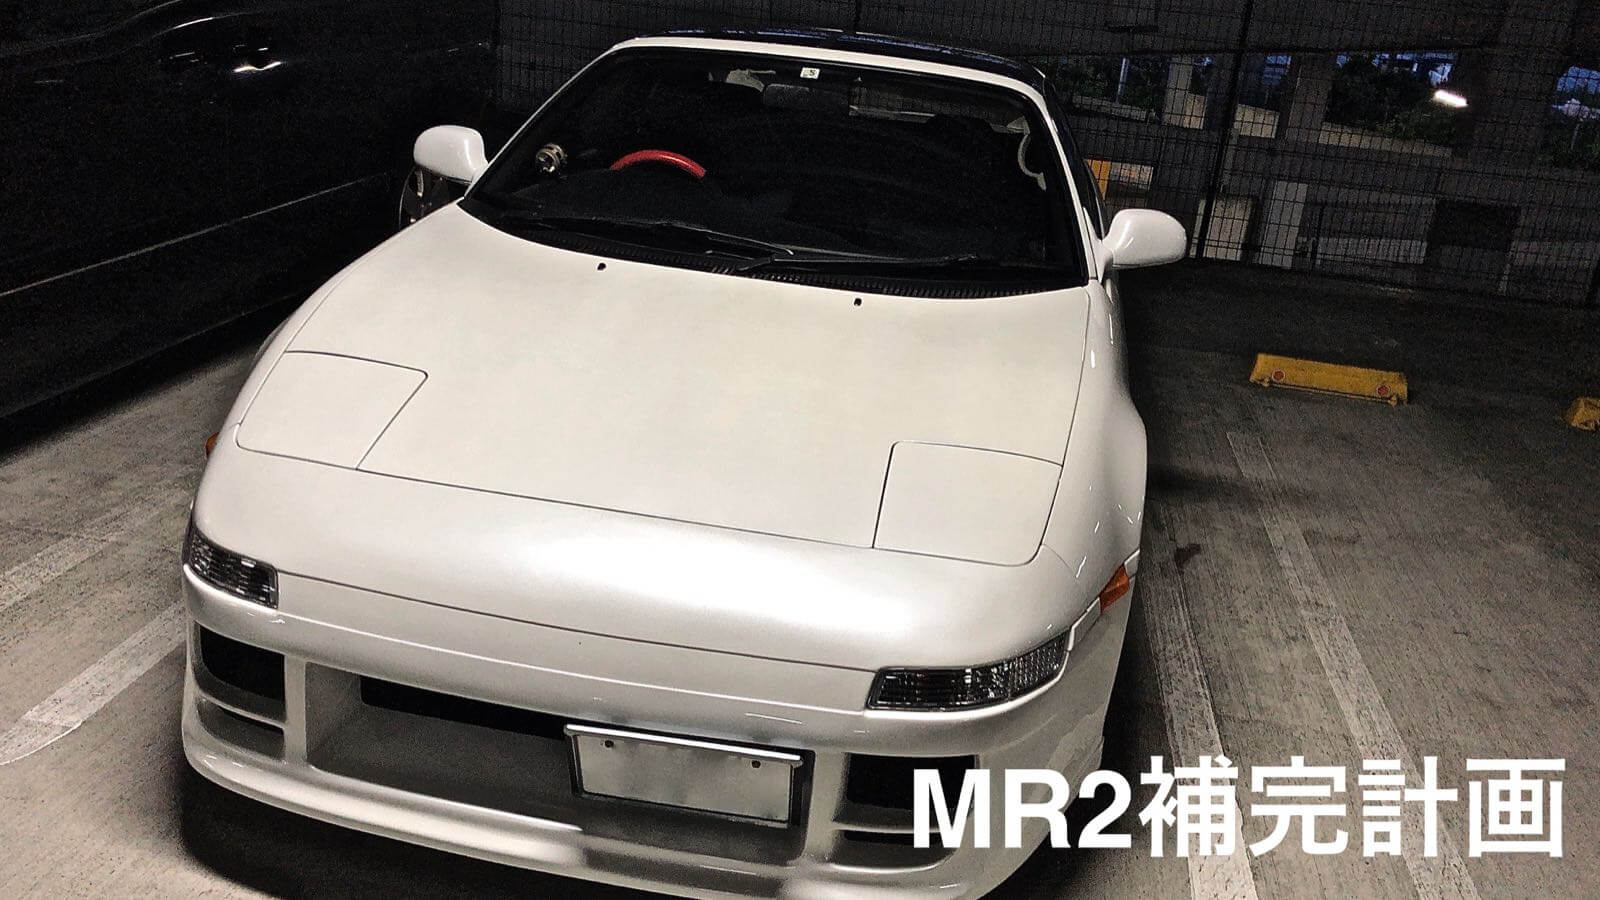 MR2 Complement plan Eye catch image